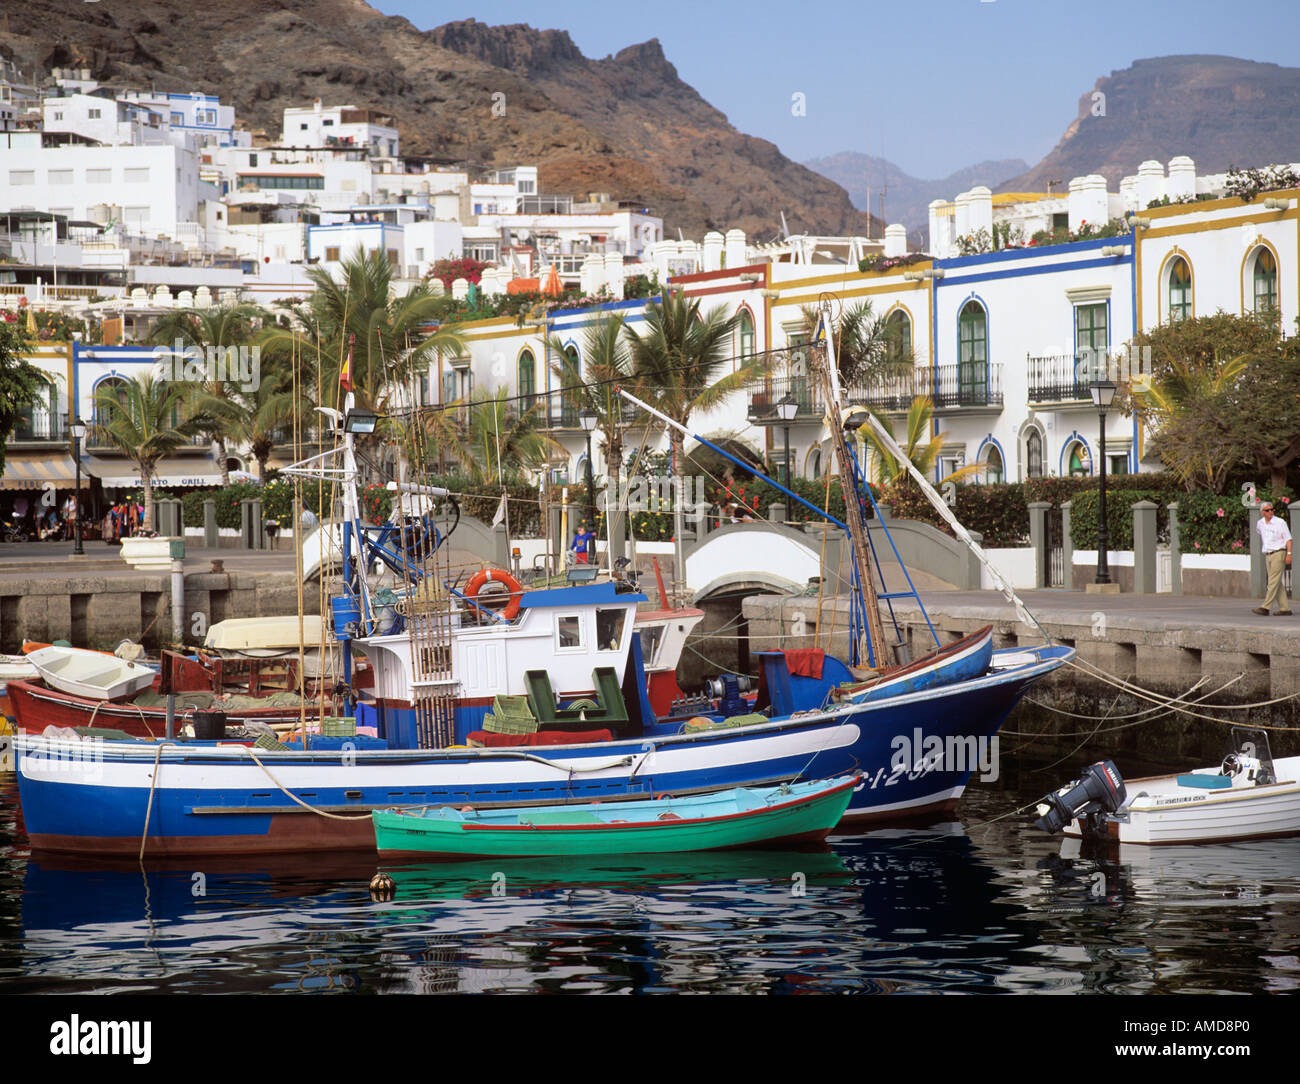 Puerto de mogan gran canaria spain small fishing boats - Houses in gran canaria ...